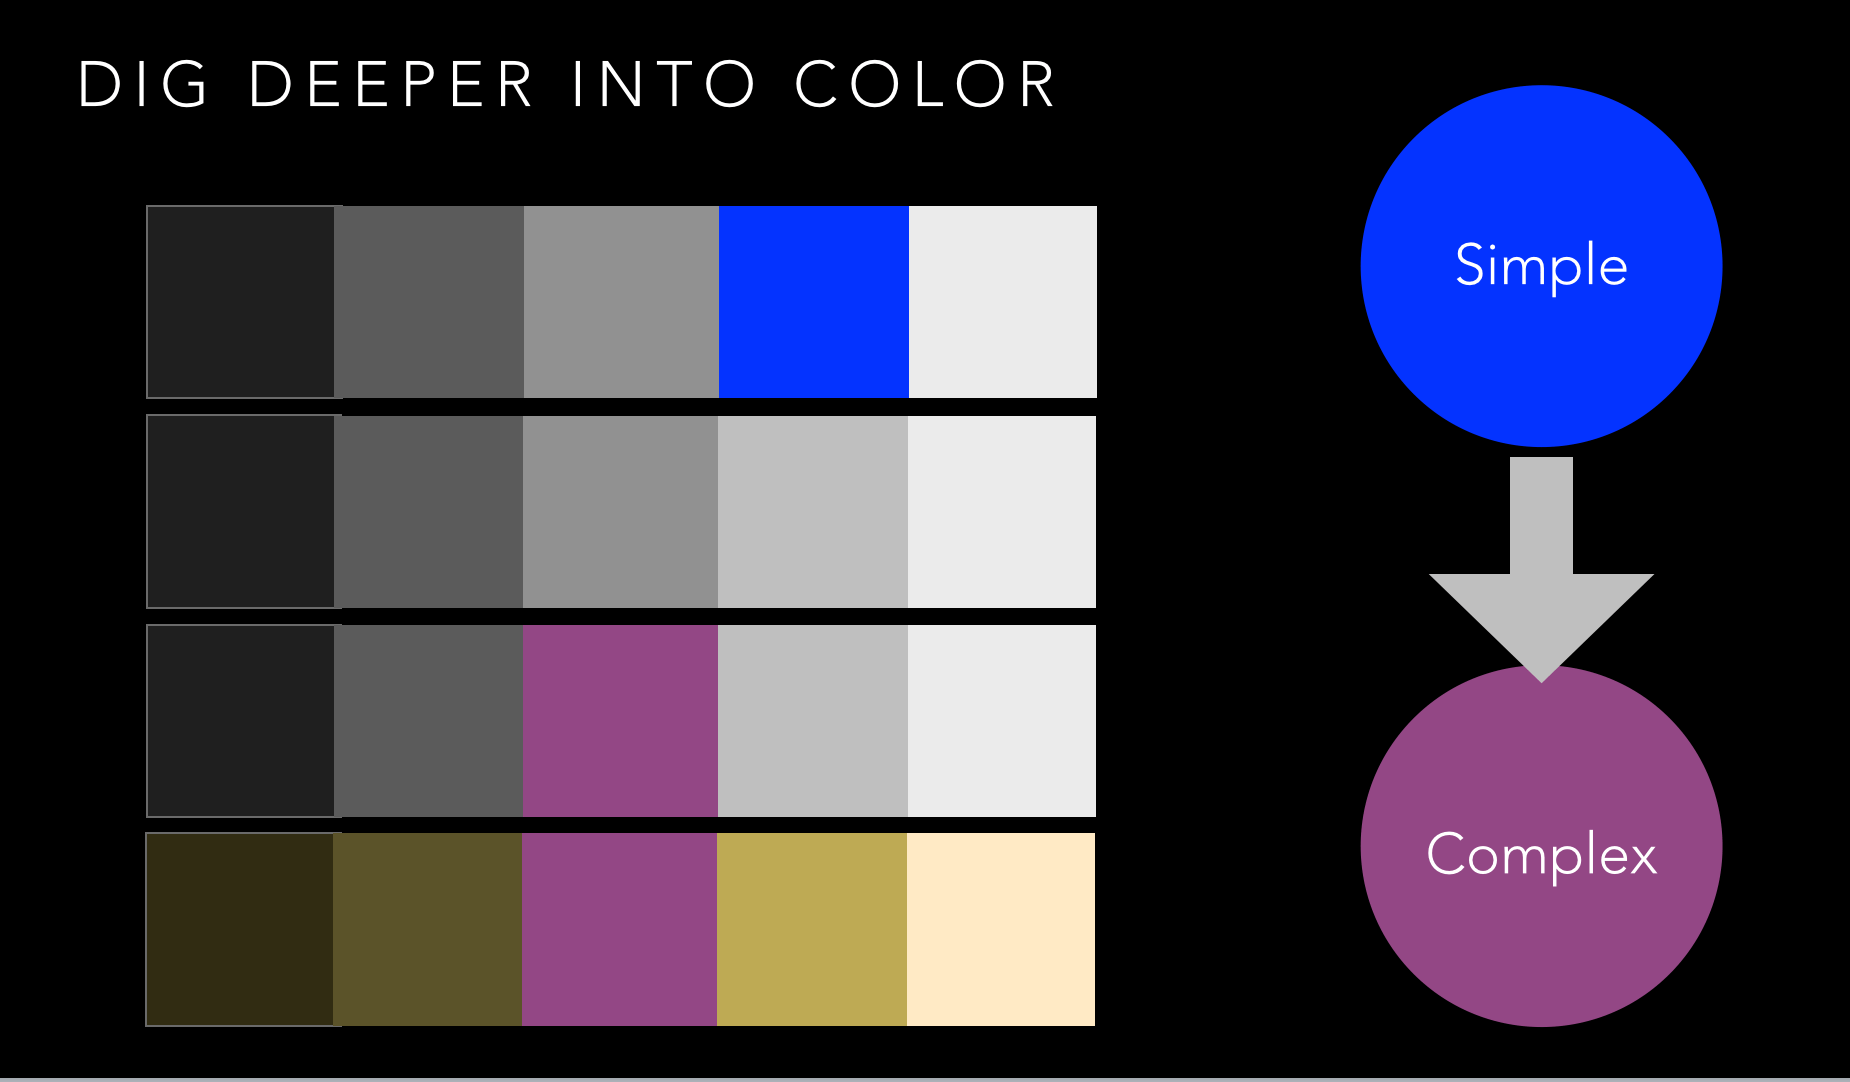 Color palettes using simple and complex colors